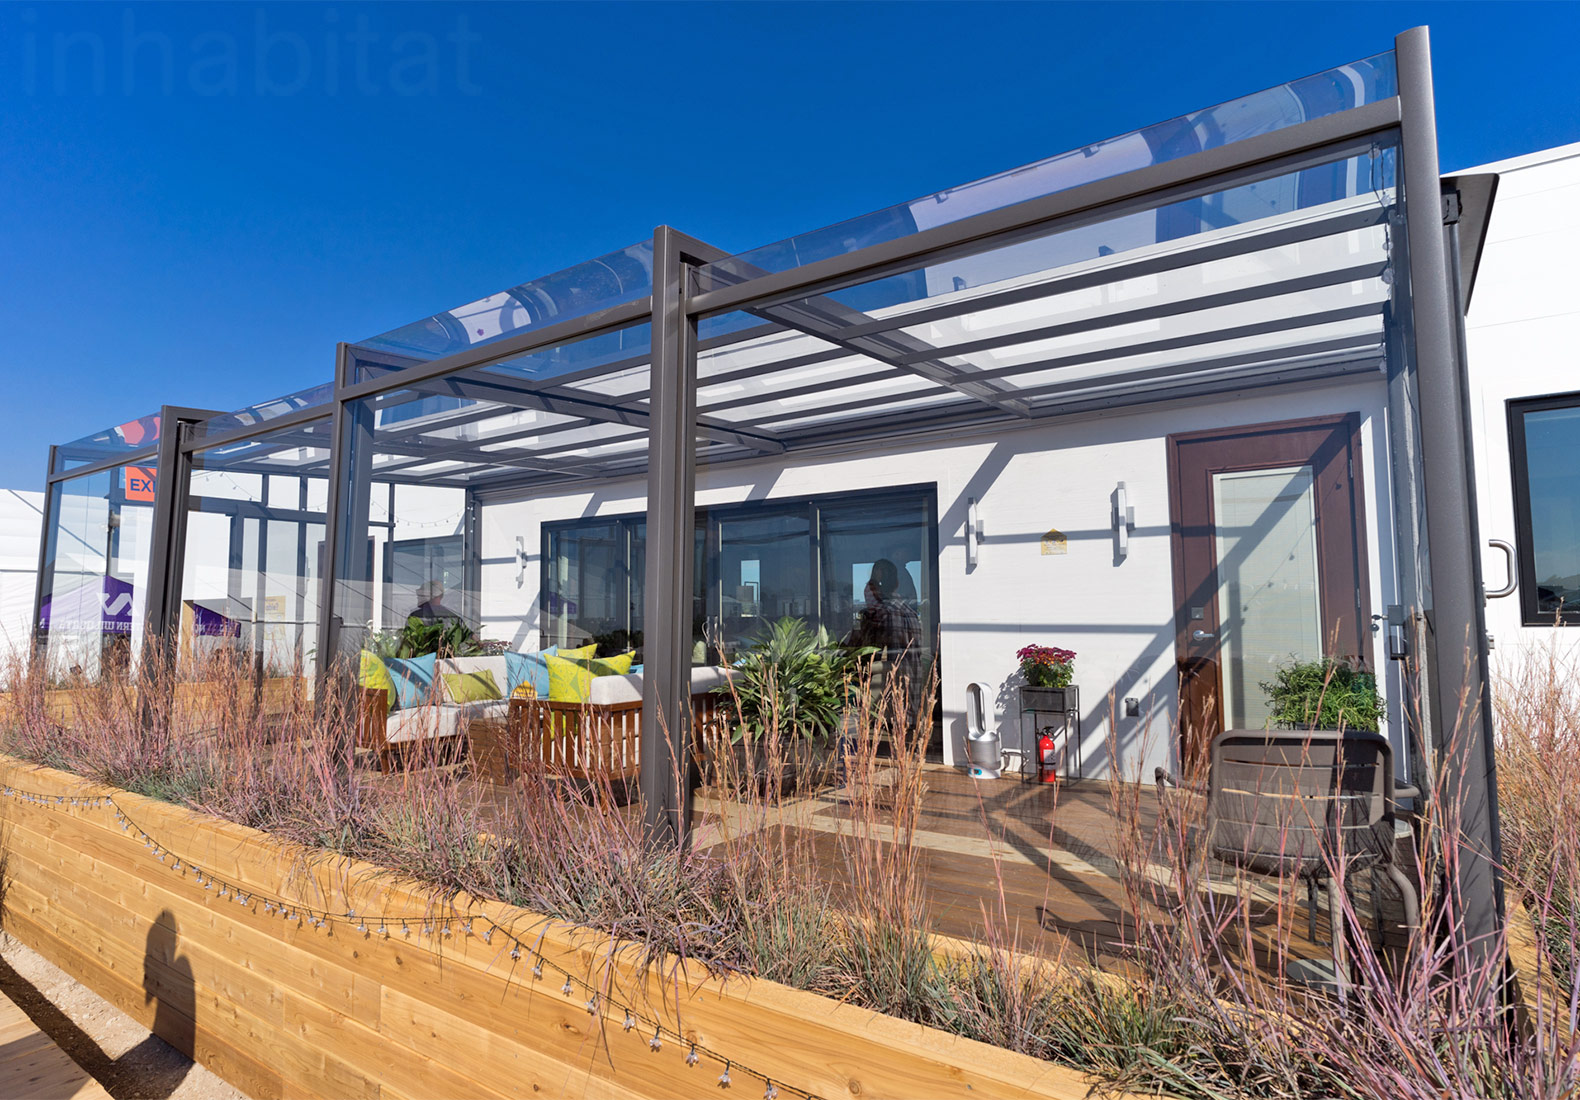 solar decathlon inhabitat green design innovation architecture